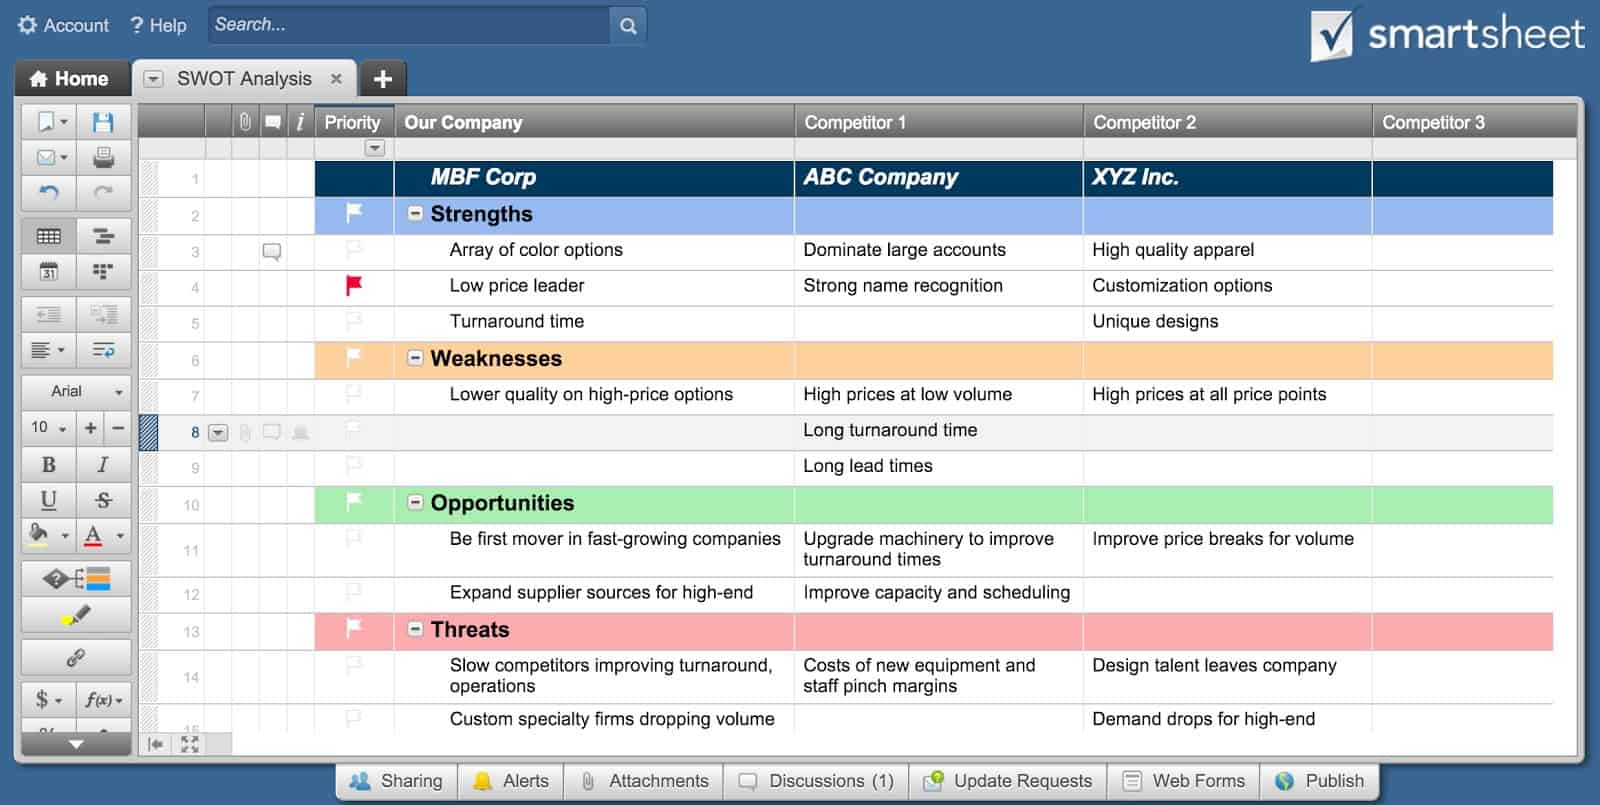 Smartsheet SWOTAnalysisTemplate  Competitors Analysis Template